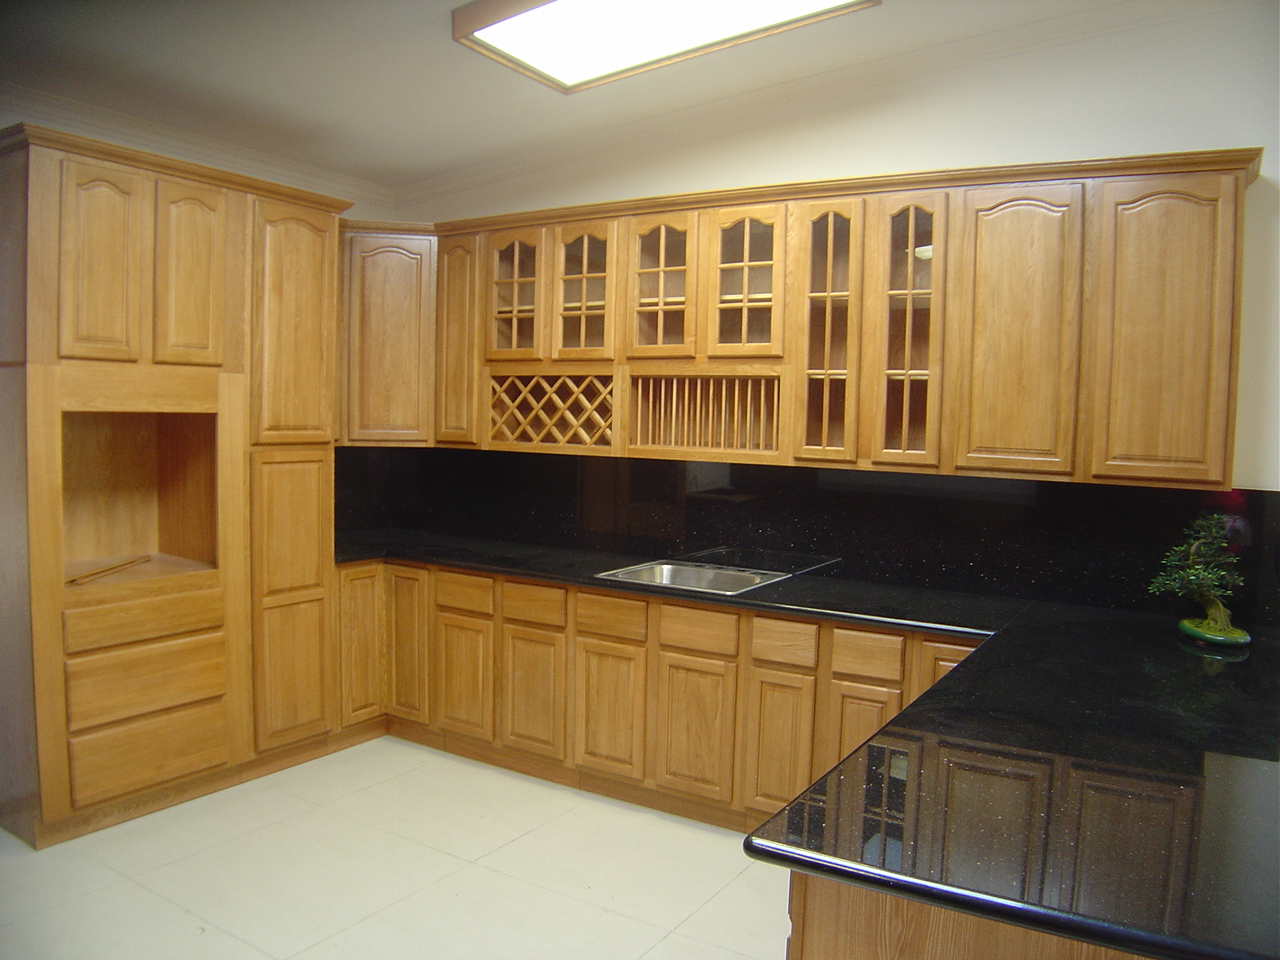 Oak kitchen cabinets for your interior kitchen minimalist for Modern kitchen cabinets design ideas